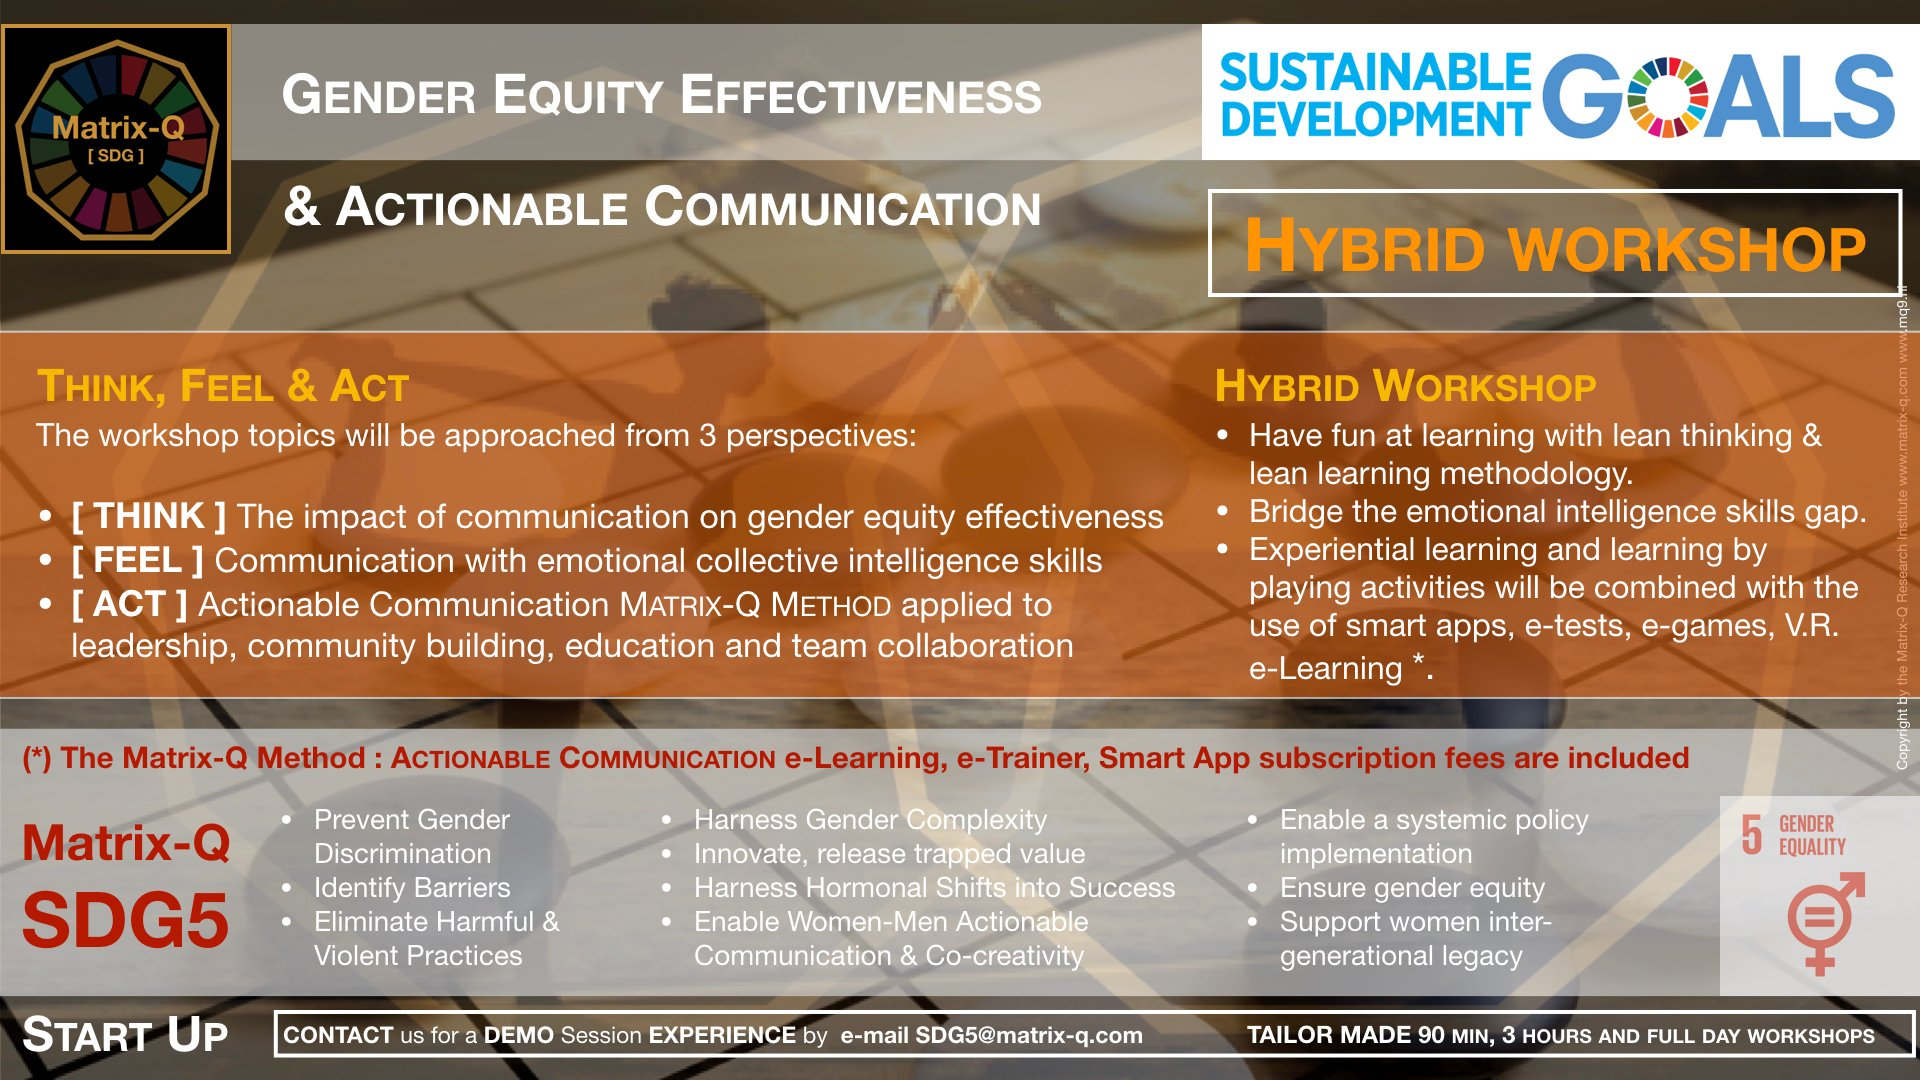 Matrix-Q SDG5 Start-Up Gender Equity Effectiveness.002